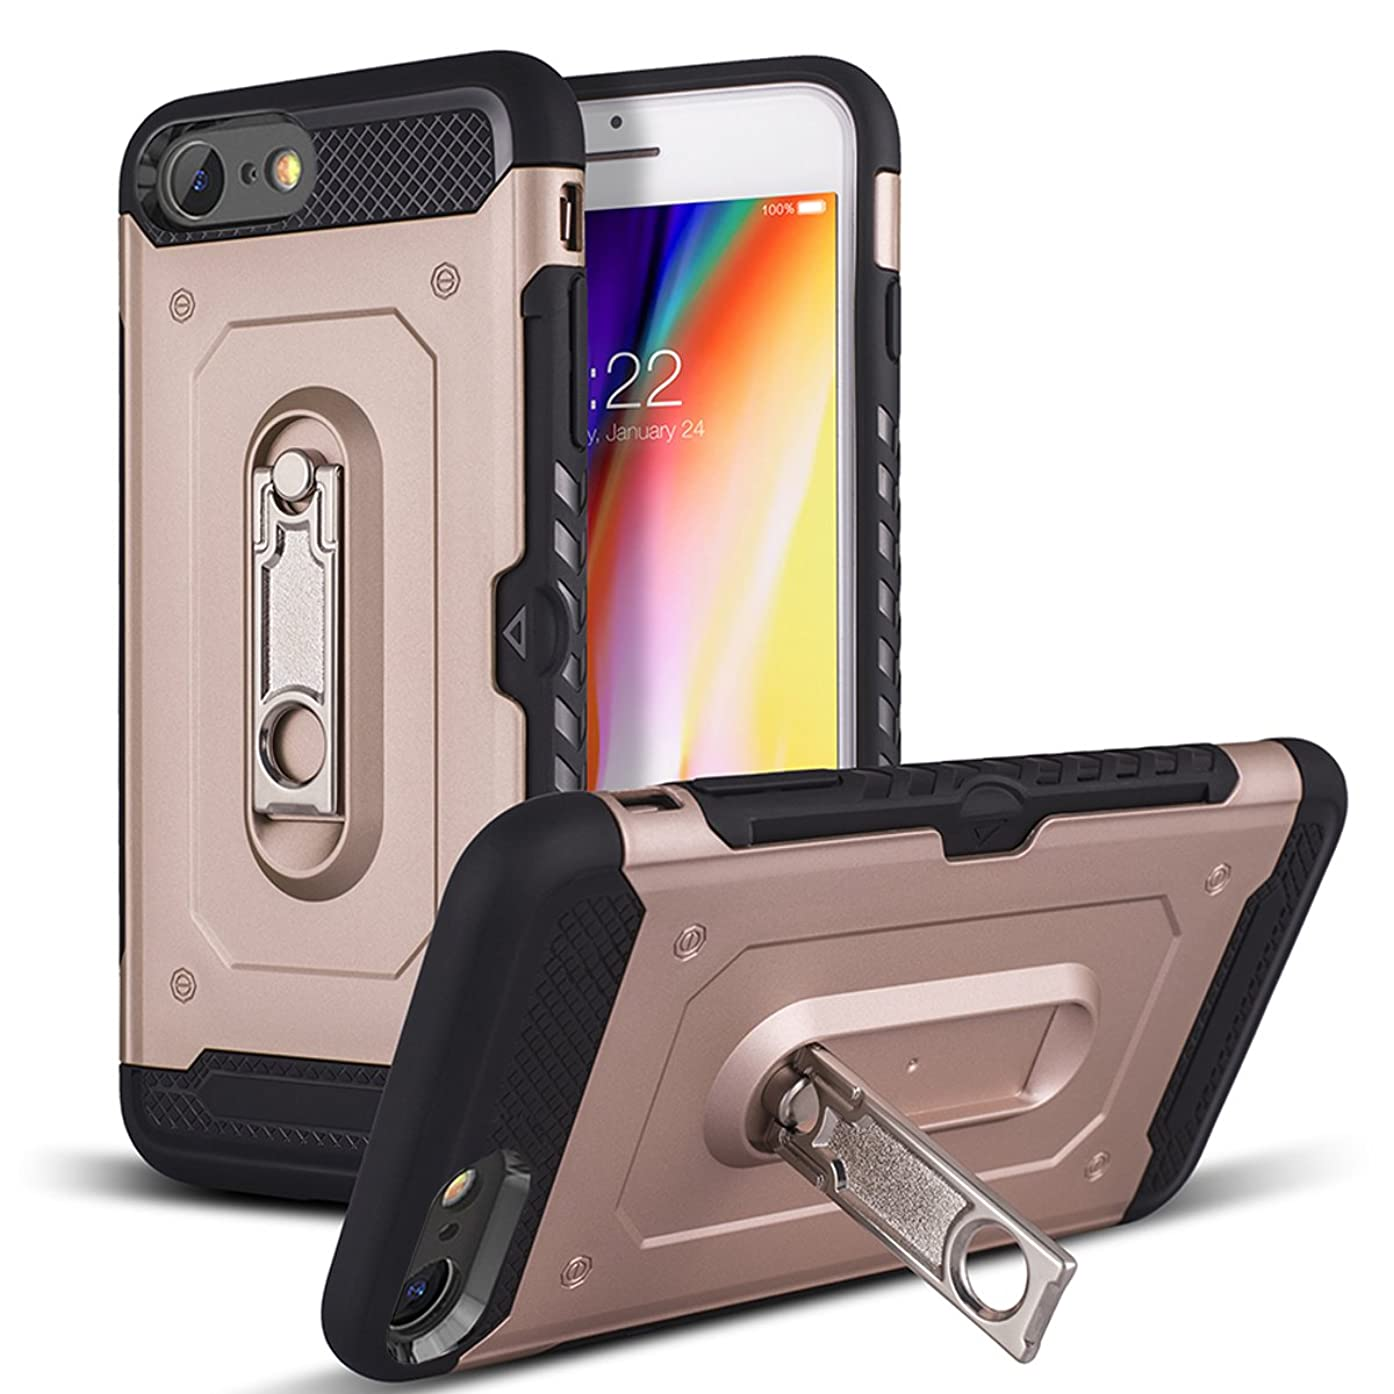 iPhone 8 Case, iPhone 7 Case with Stand & Wallet Design Card Slot Holder, Tobomoco Hard PC and Soft TPU Bumper Shock-Absorption Anti-Scratch Protective Case Cover for iPhone 7/8 [4.7 inch], Rose Gold